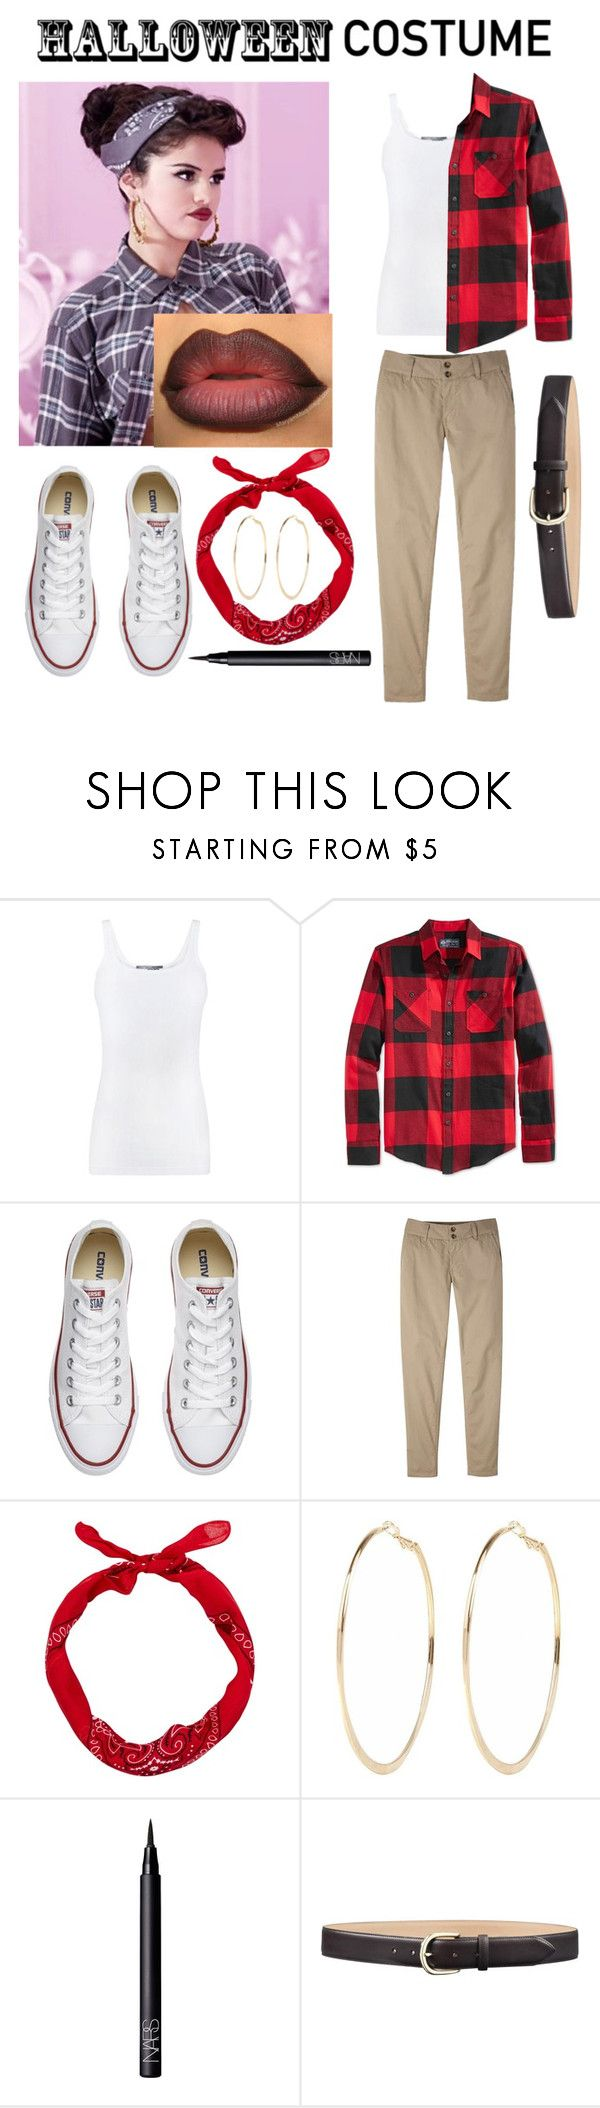 """""""Last minute chola costume!"""" by jbeach1124 ❤ liked on Polyvore featuring Vince, American Rag Cie, Converse, Mountain Khakis, River Island and NARS Cosmetics"""